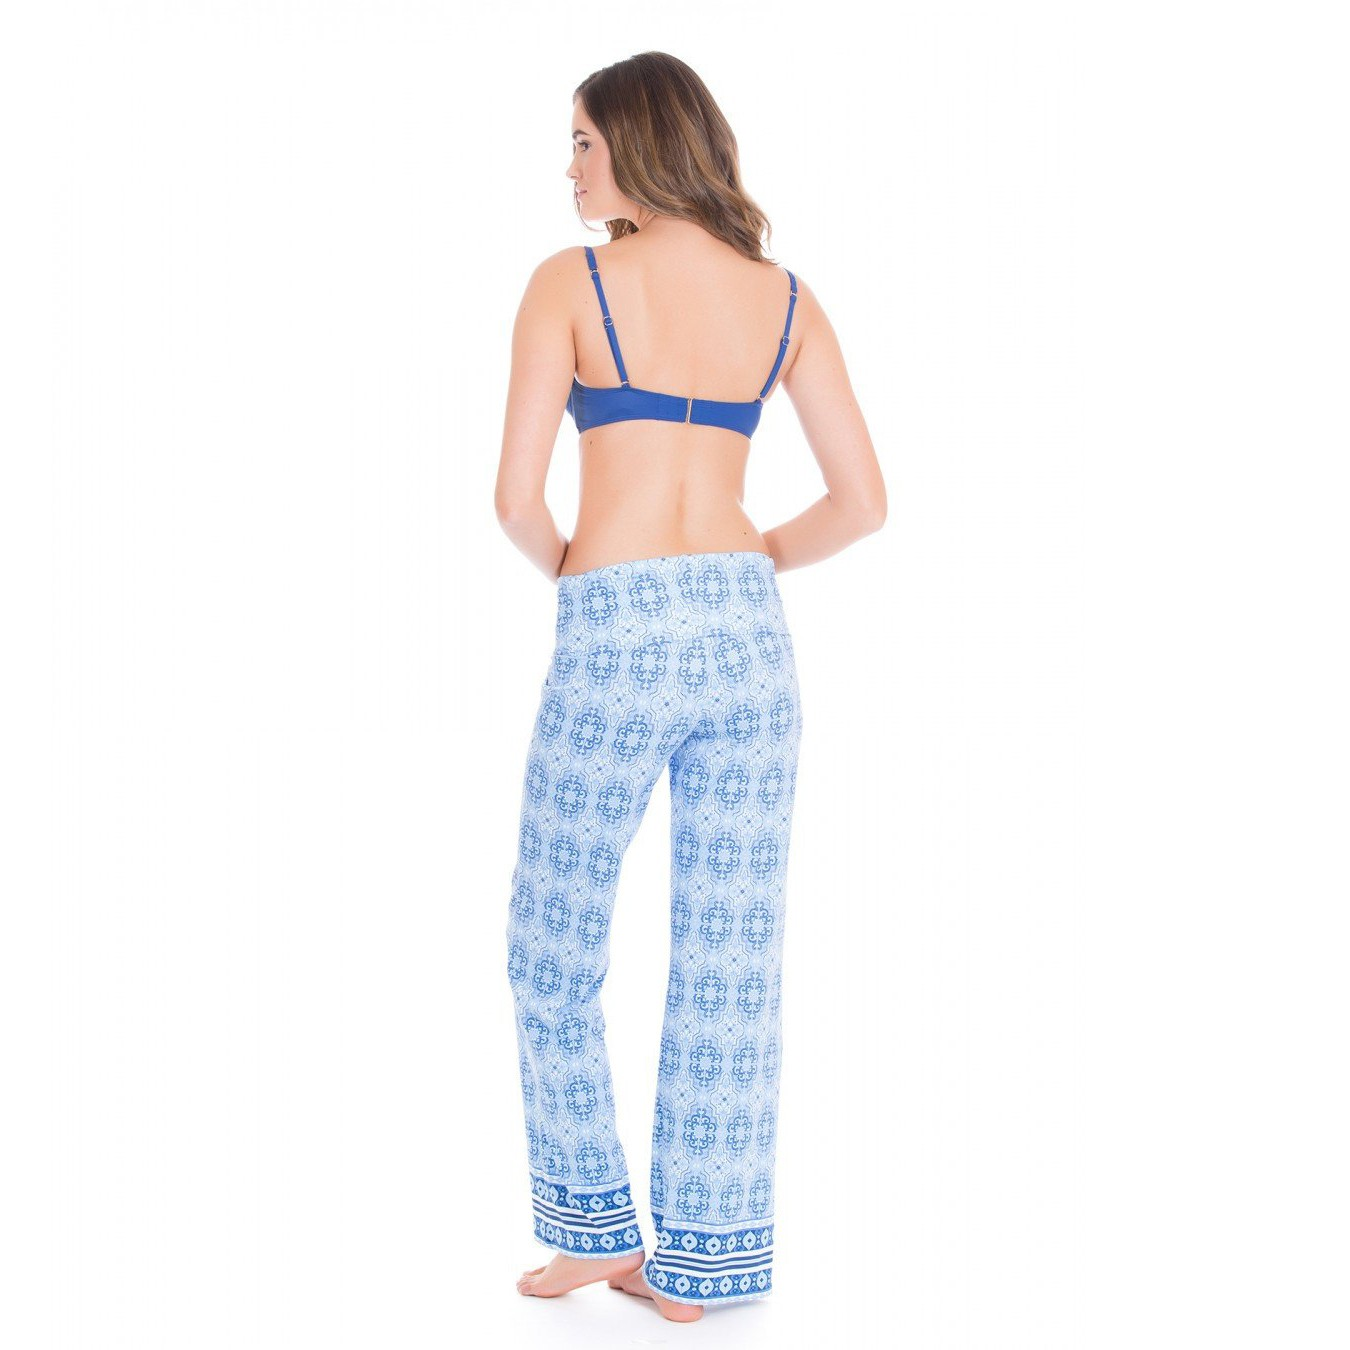 Cabana Life Printed Beach Pants (Women's)